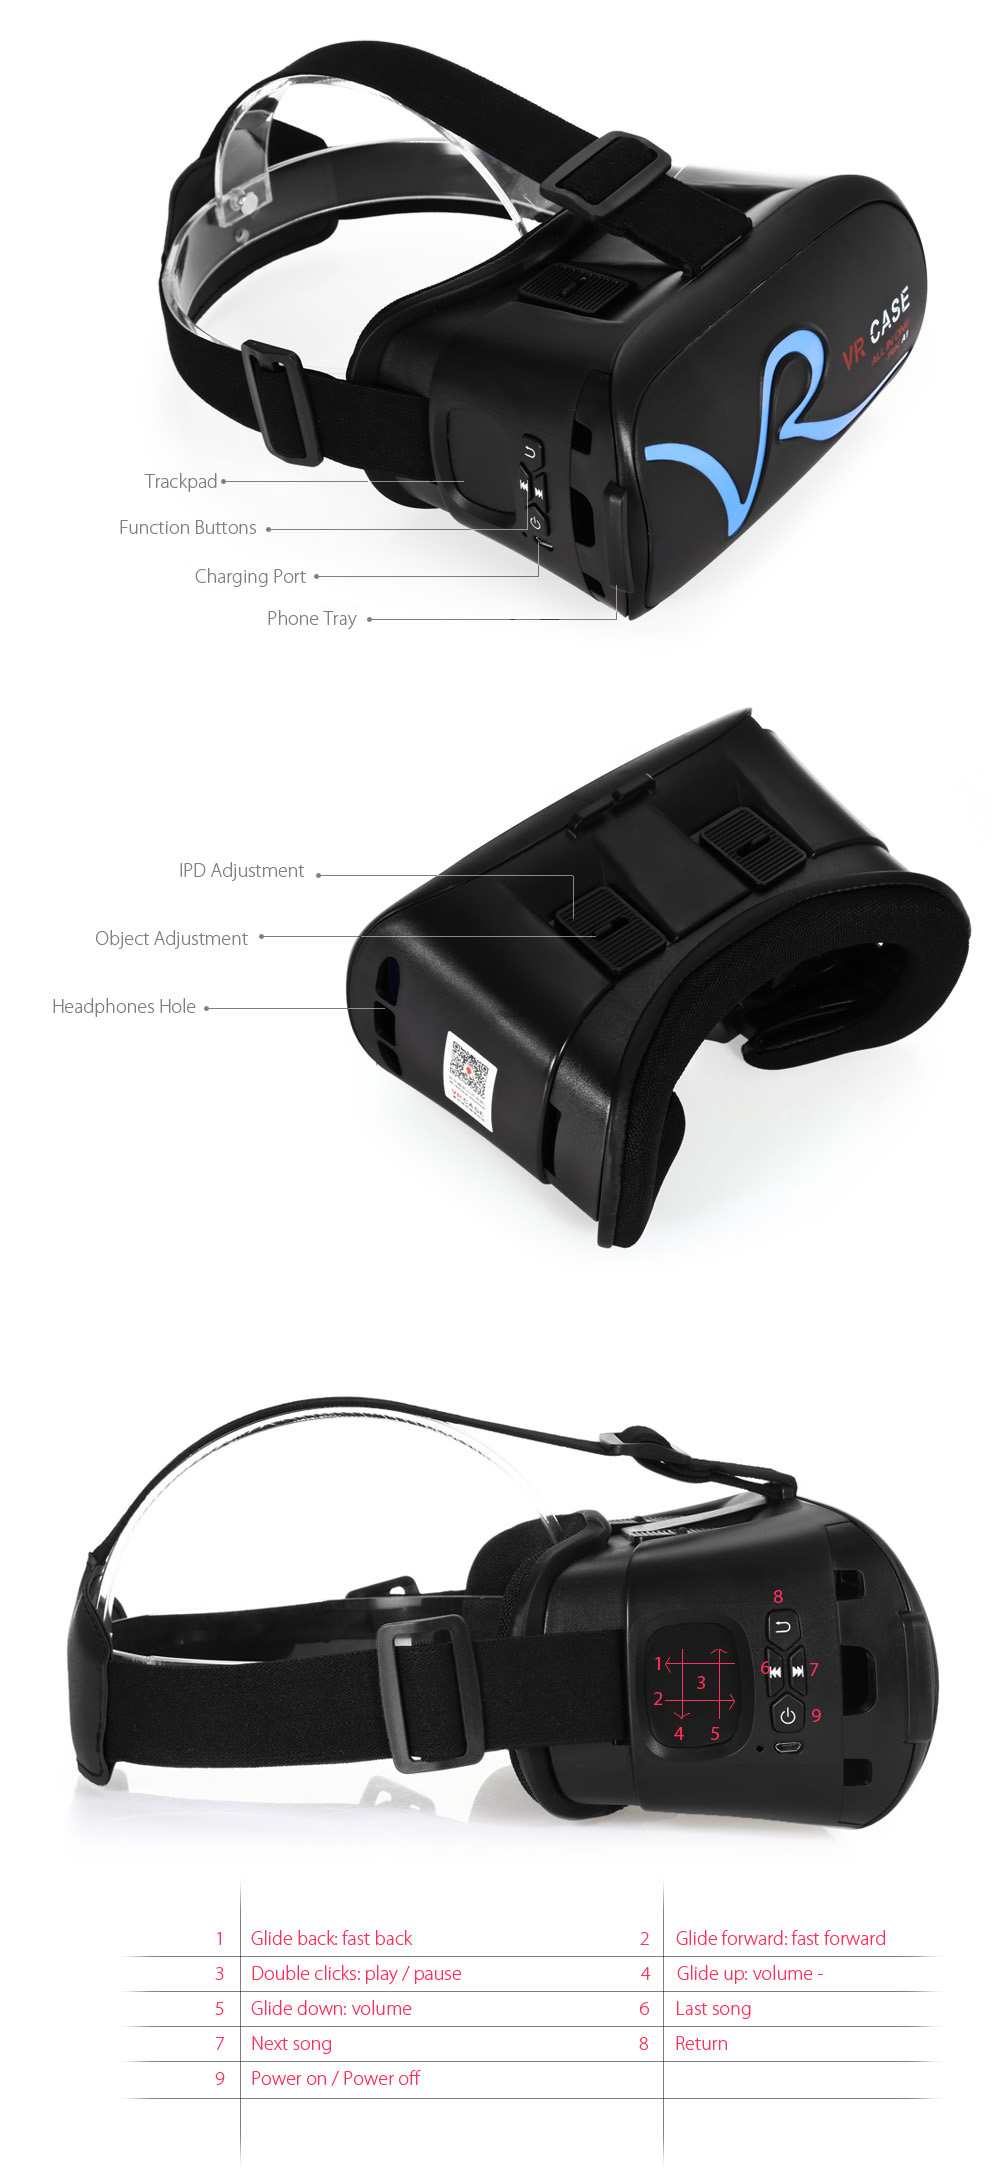 VR Case A1 Bluetooth 3D Glasses for 4.0 - 5.8 inch Smart Phones with Trackpad